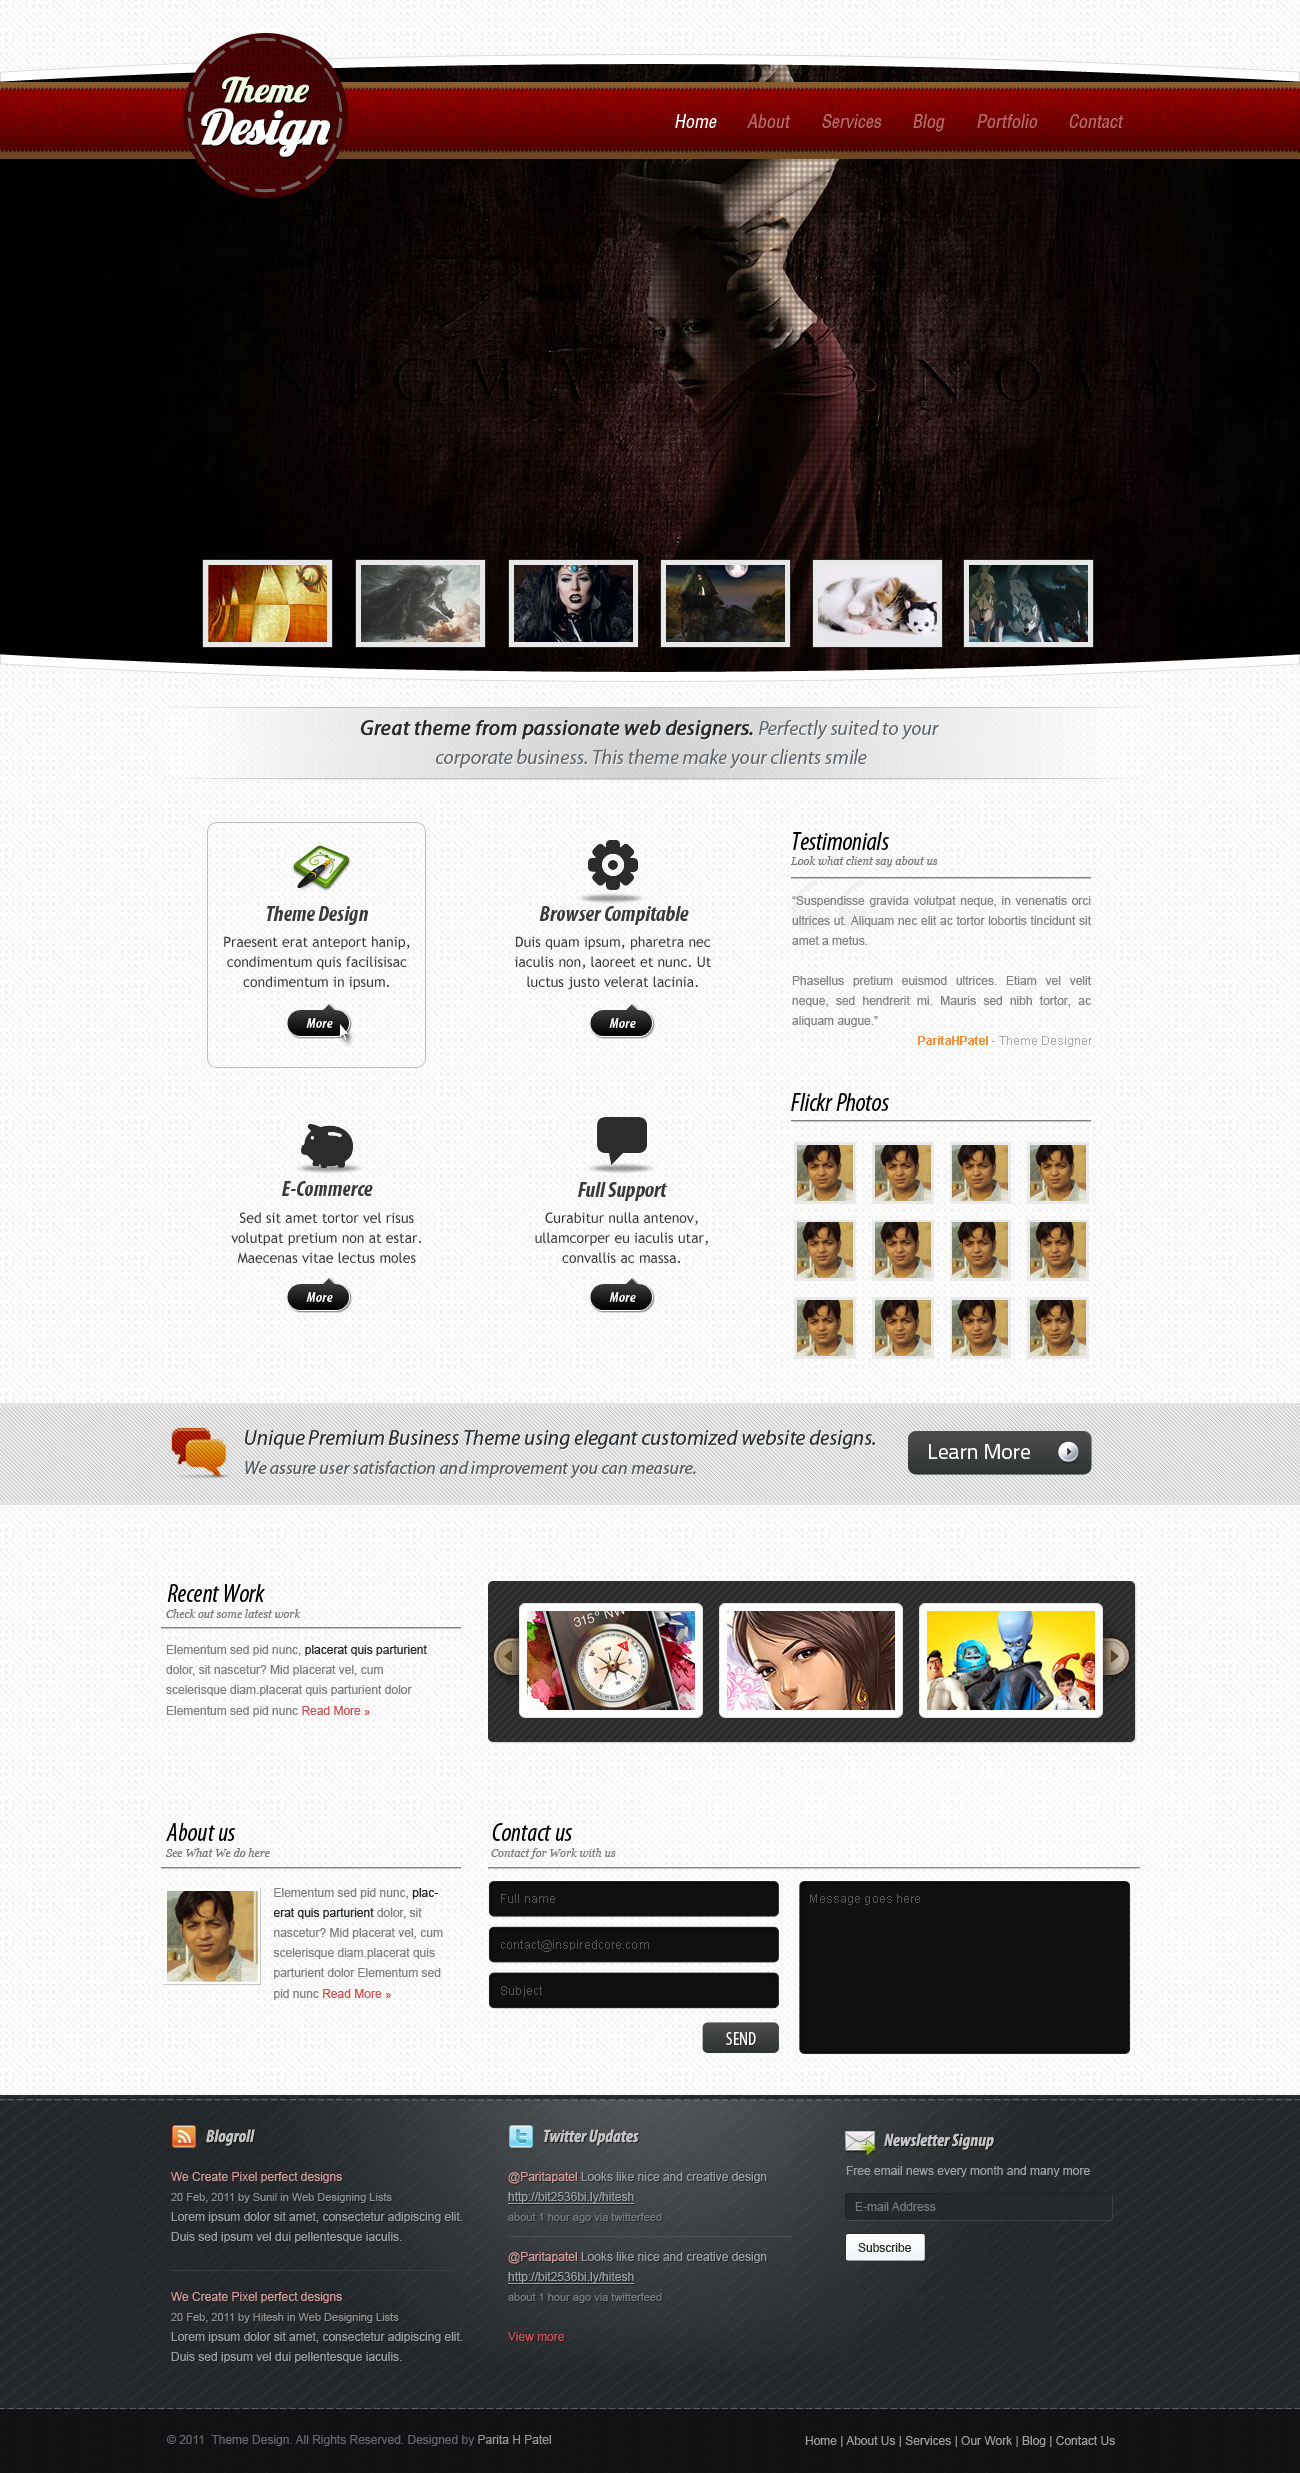 Theme Design by hitlat